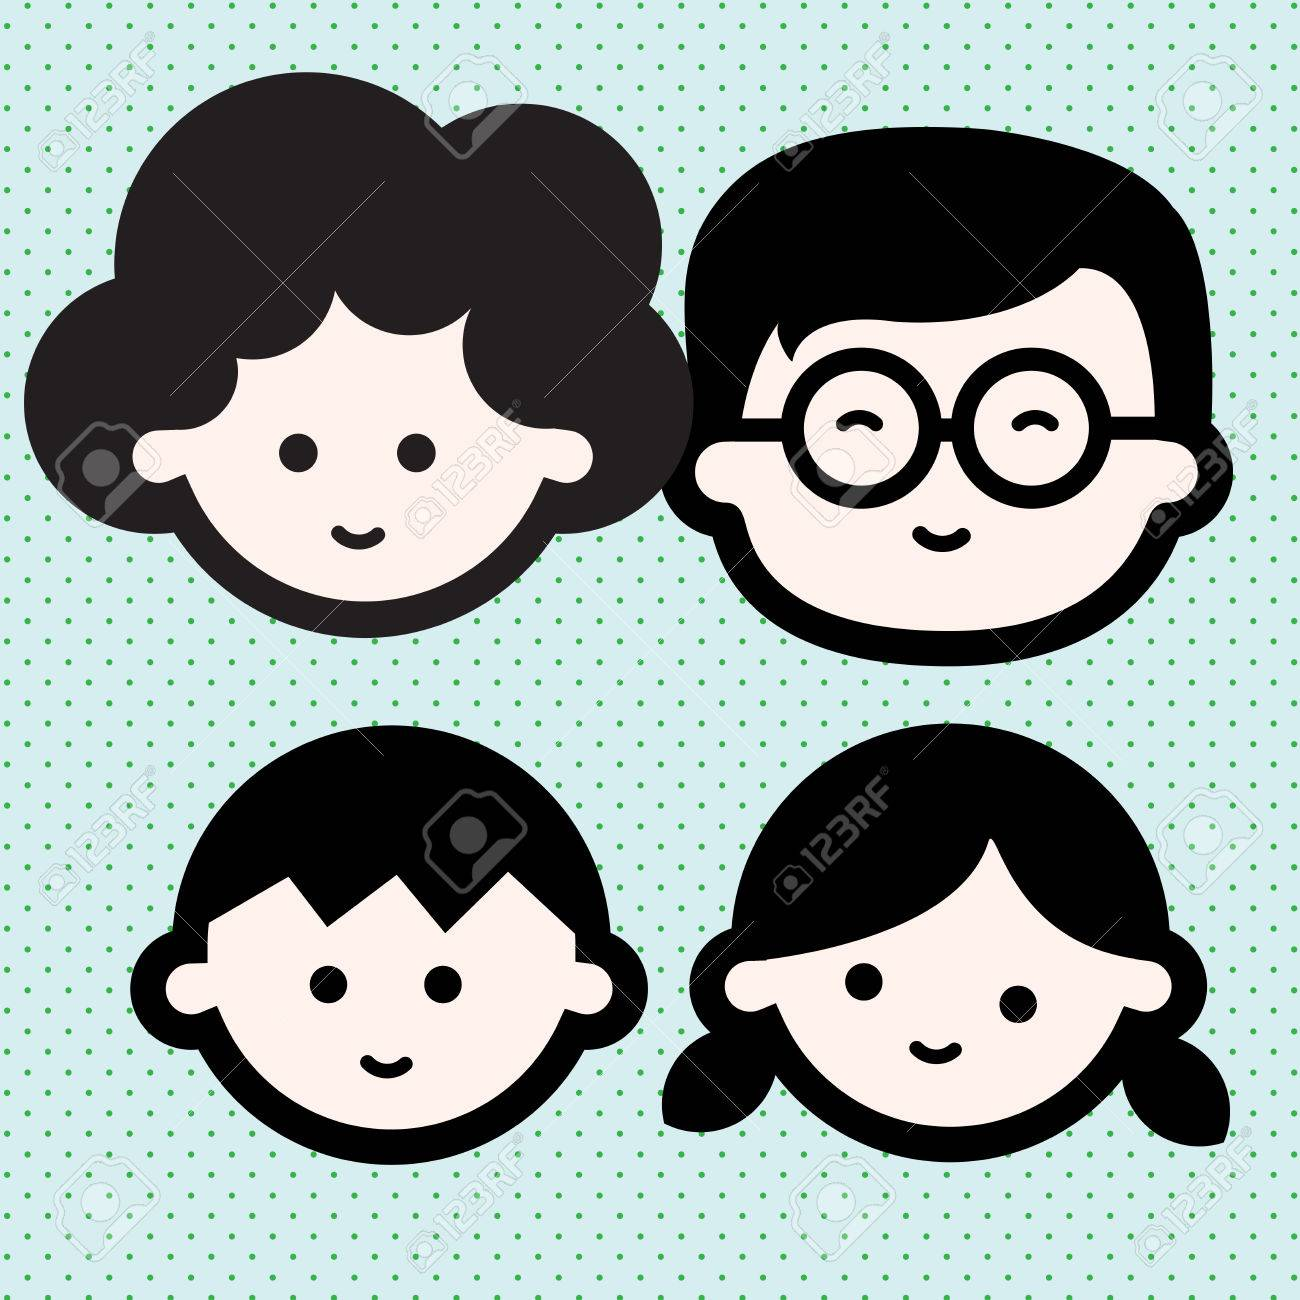 Happy Family Picture Captured 4 Members Papa Mama Boy And Girl Royalty Free Cliparts Vectors And Stock Illustration Image 77923973